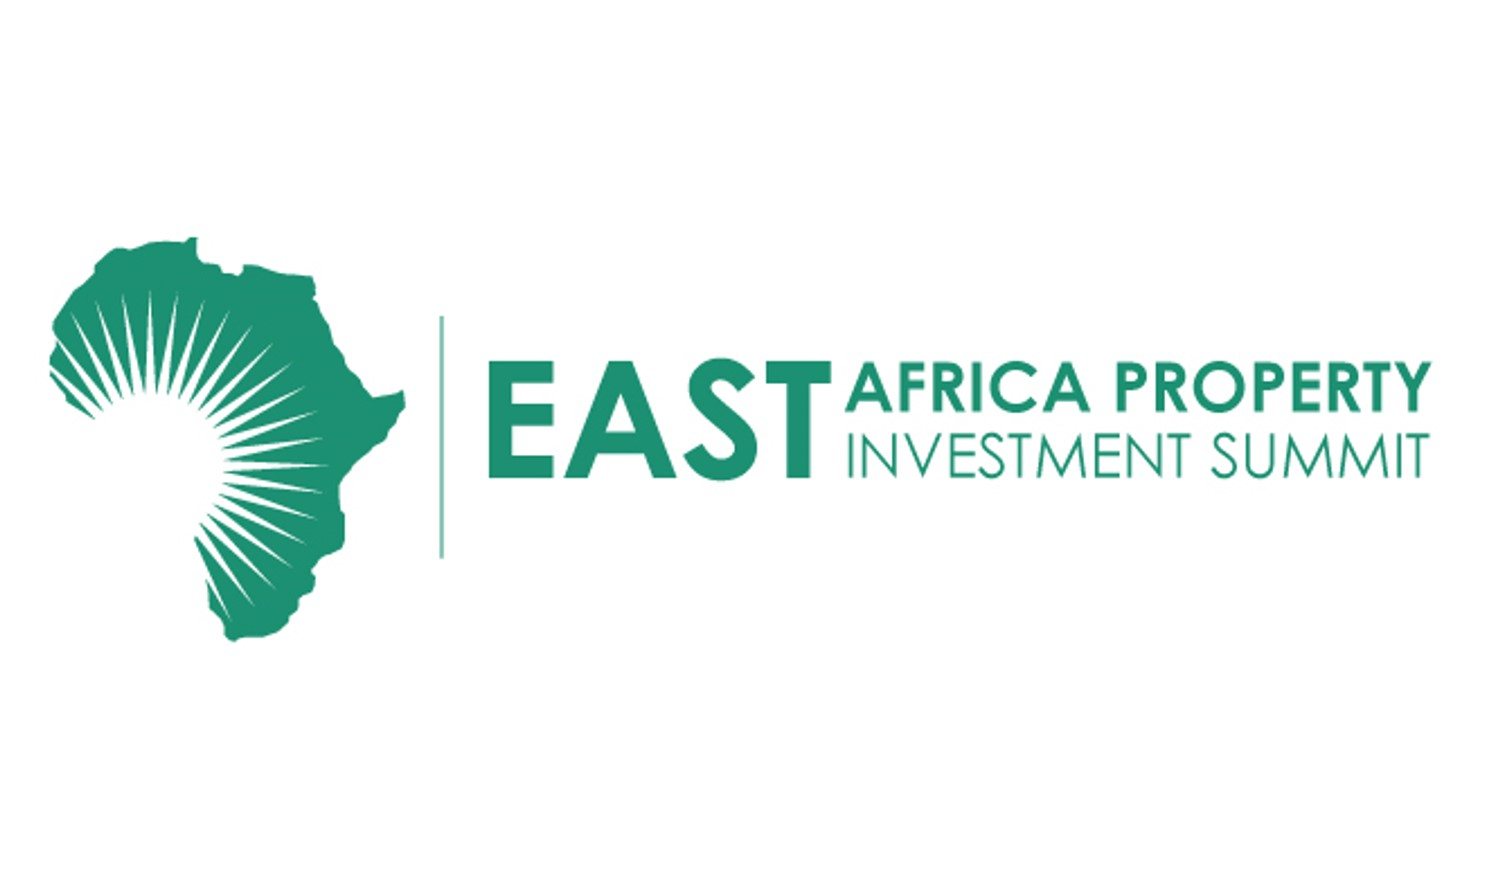 East Africa Property Investment (EAPI) Summit organized by API Events